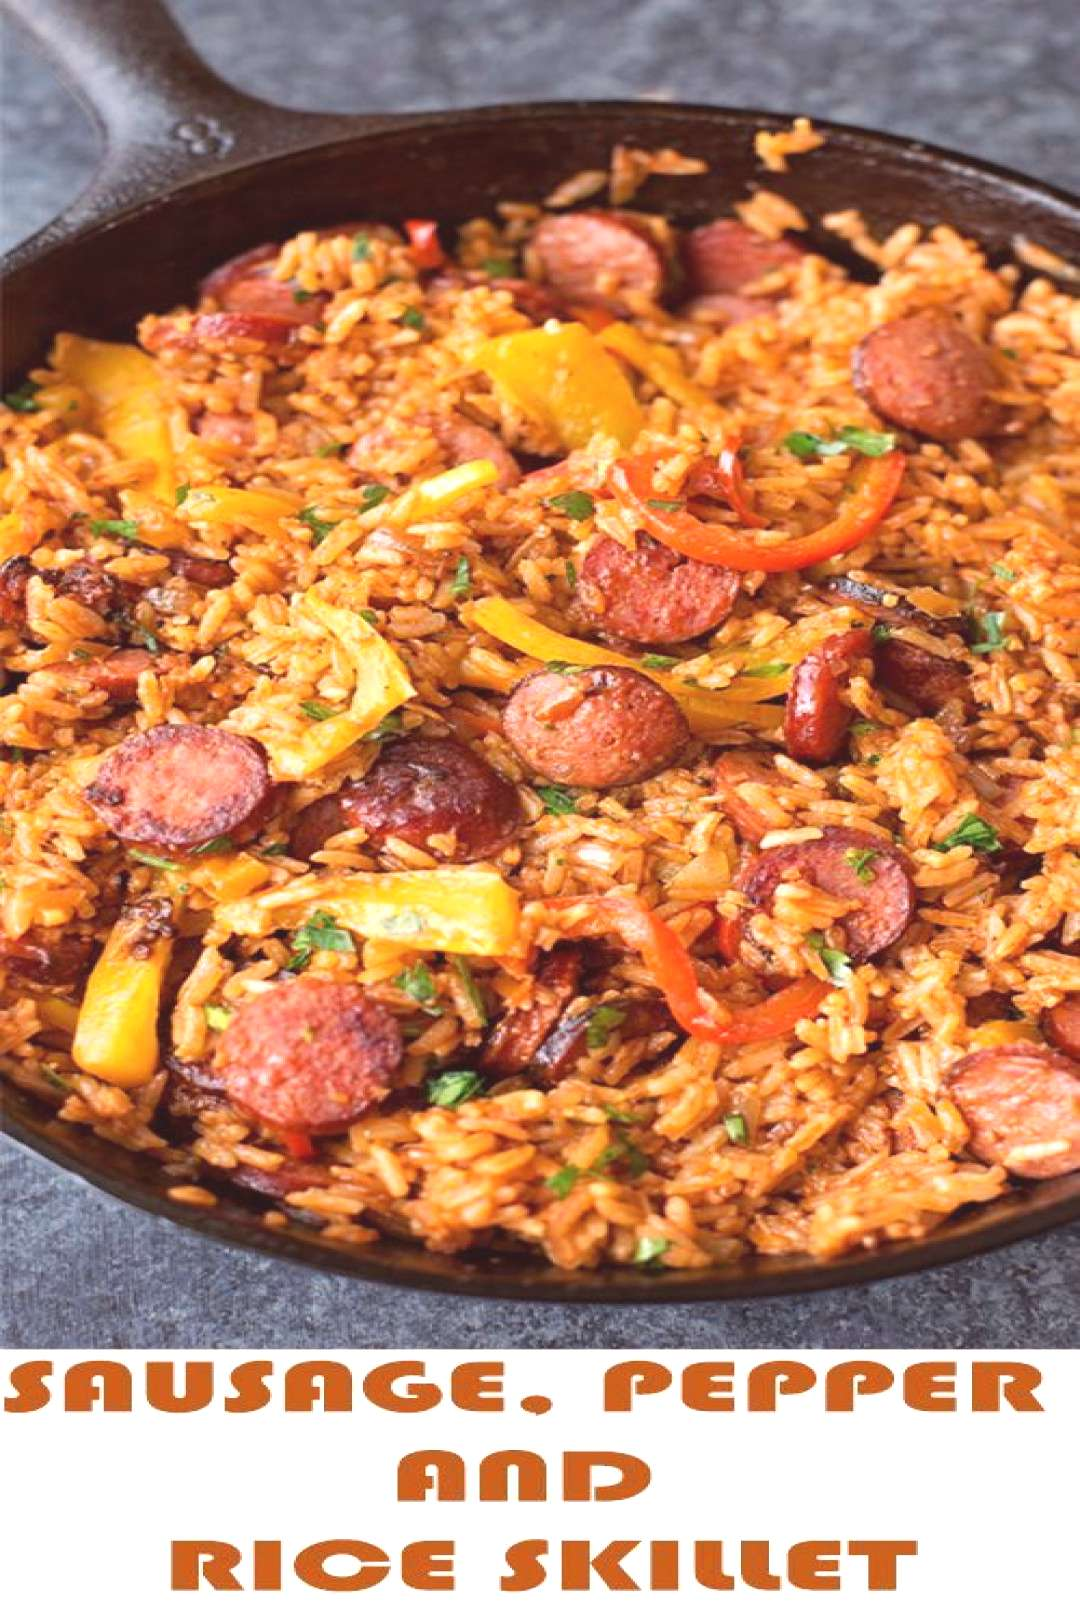 Smoky kielbasa sizzled with sweet bell pepper, onions and garlic in vibrant toma... Sausage Recipes